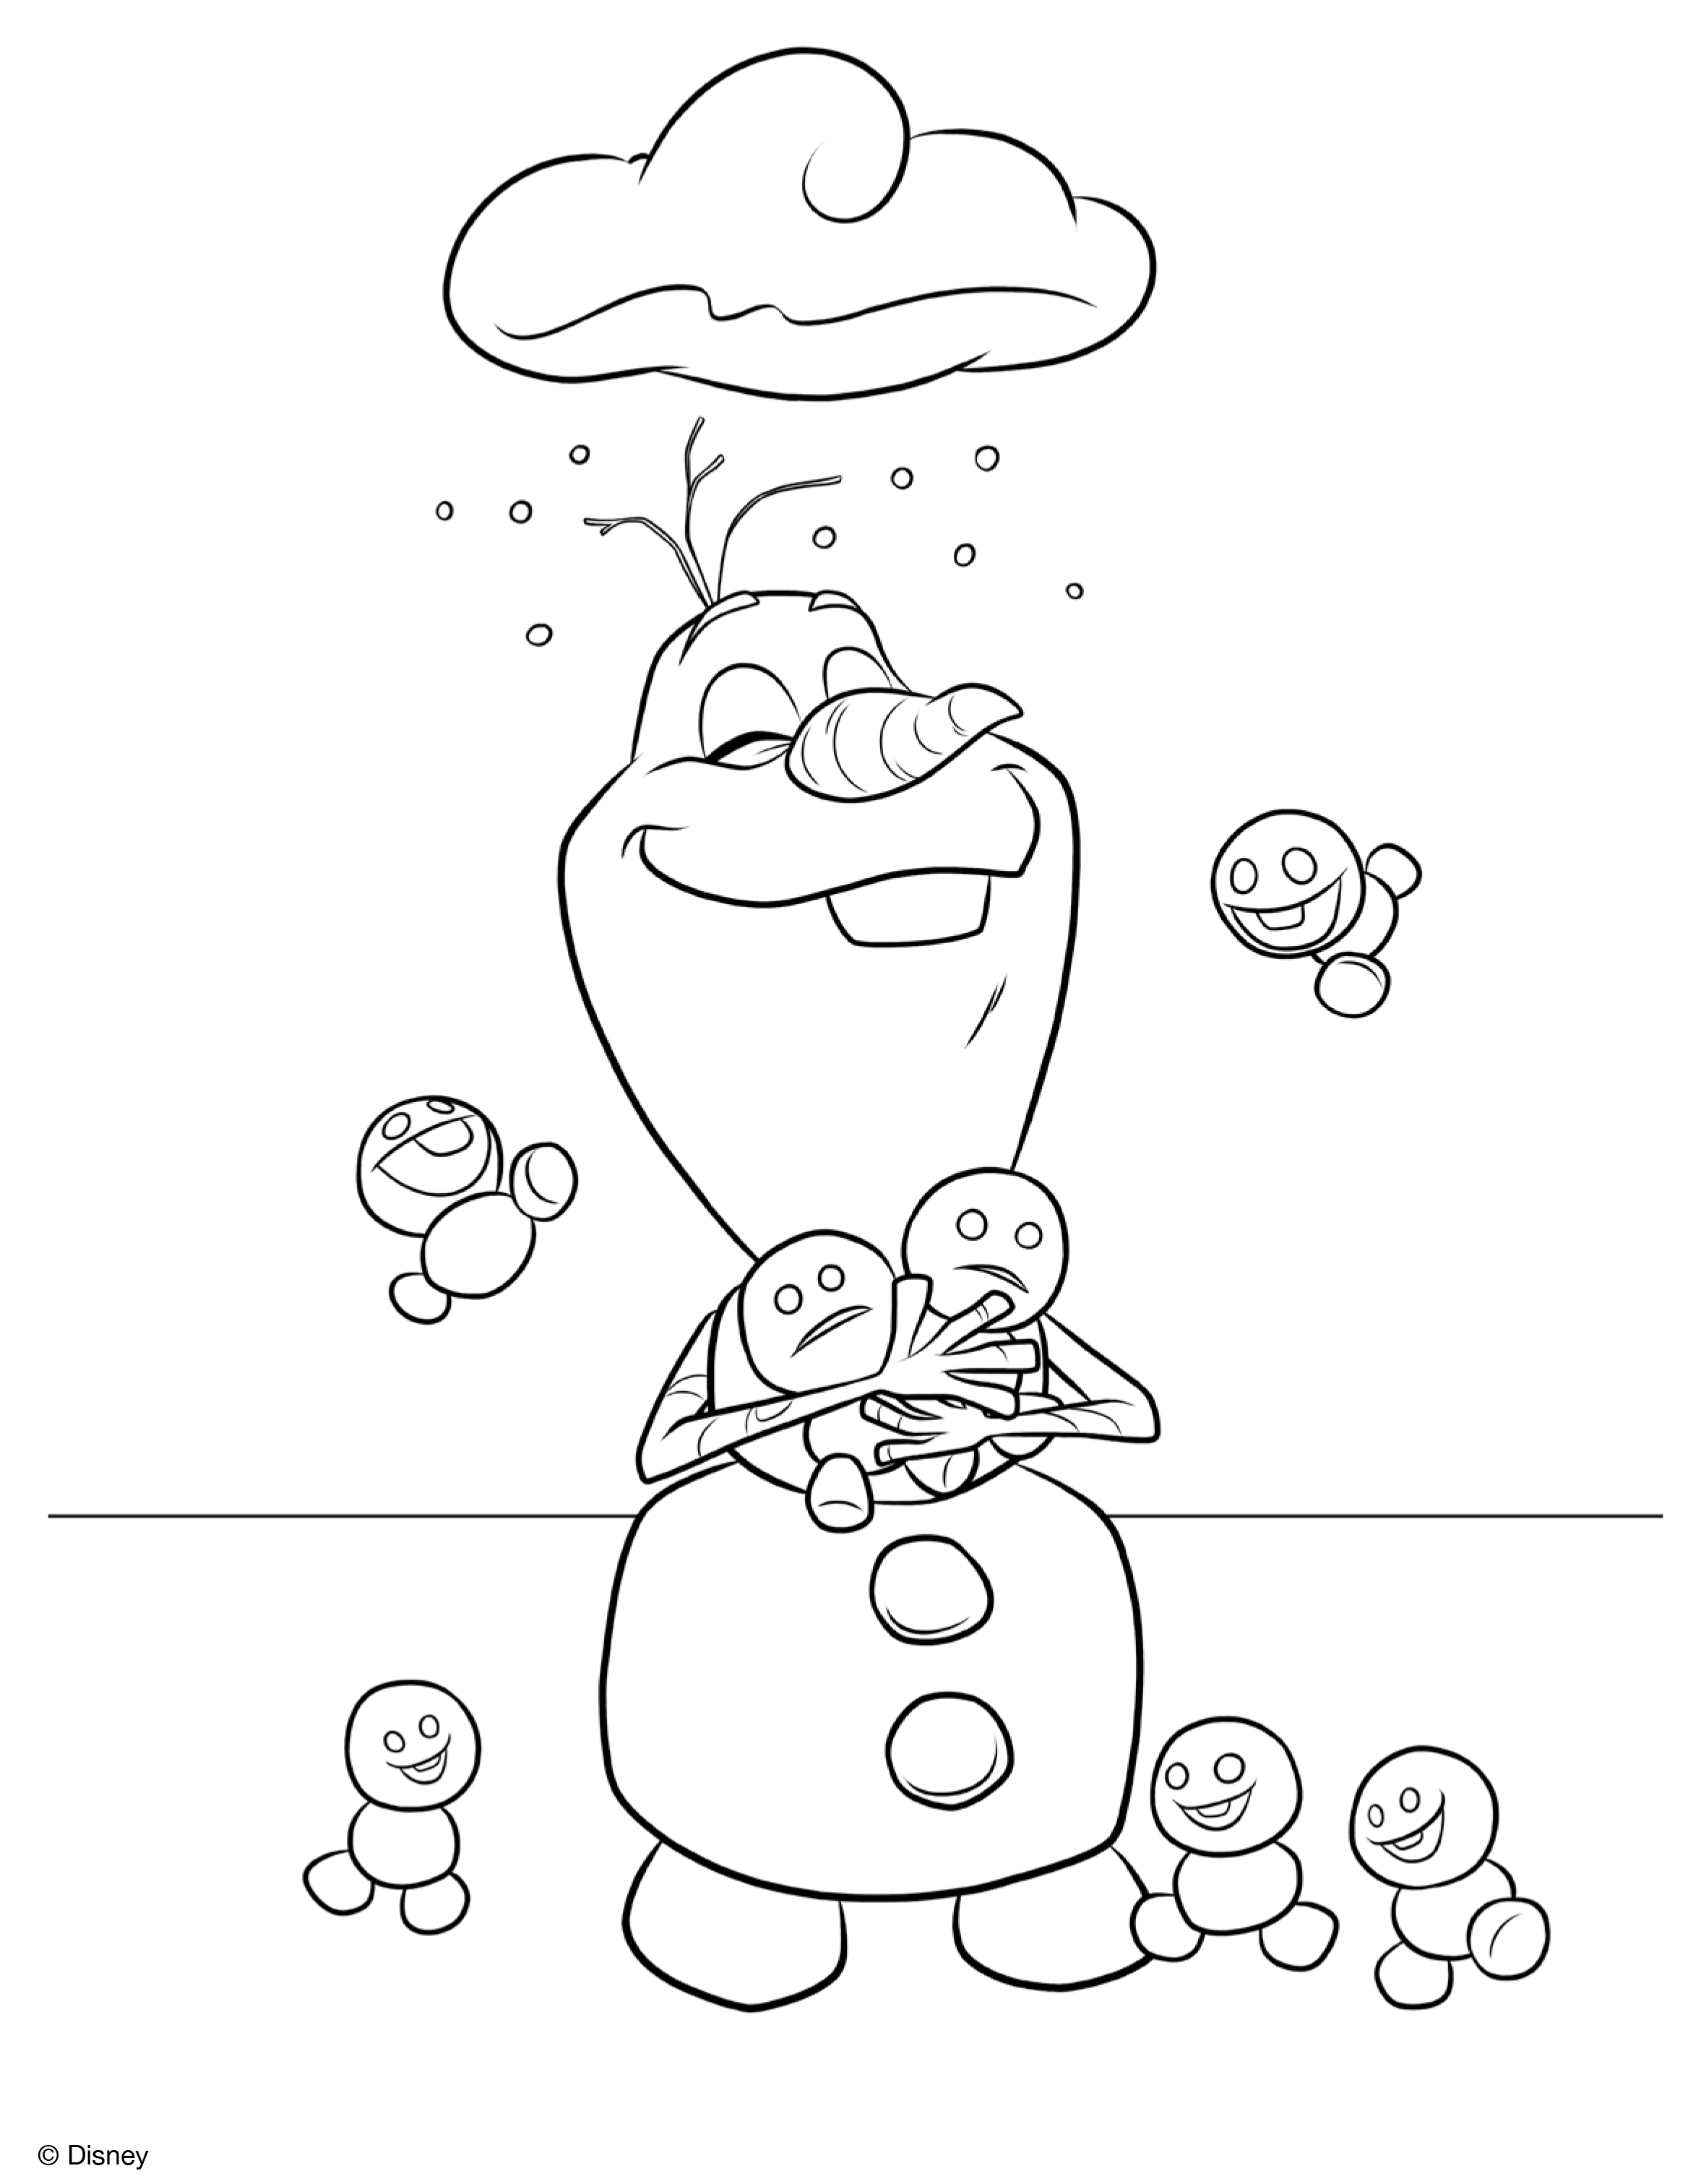 olaf coloring page cute olaf frozen coloring pages easy frozen olaf page coloring olaf